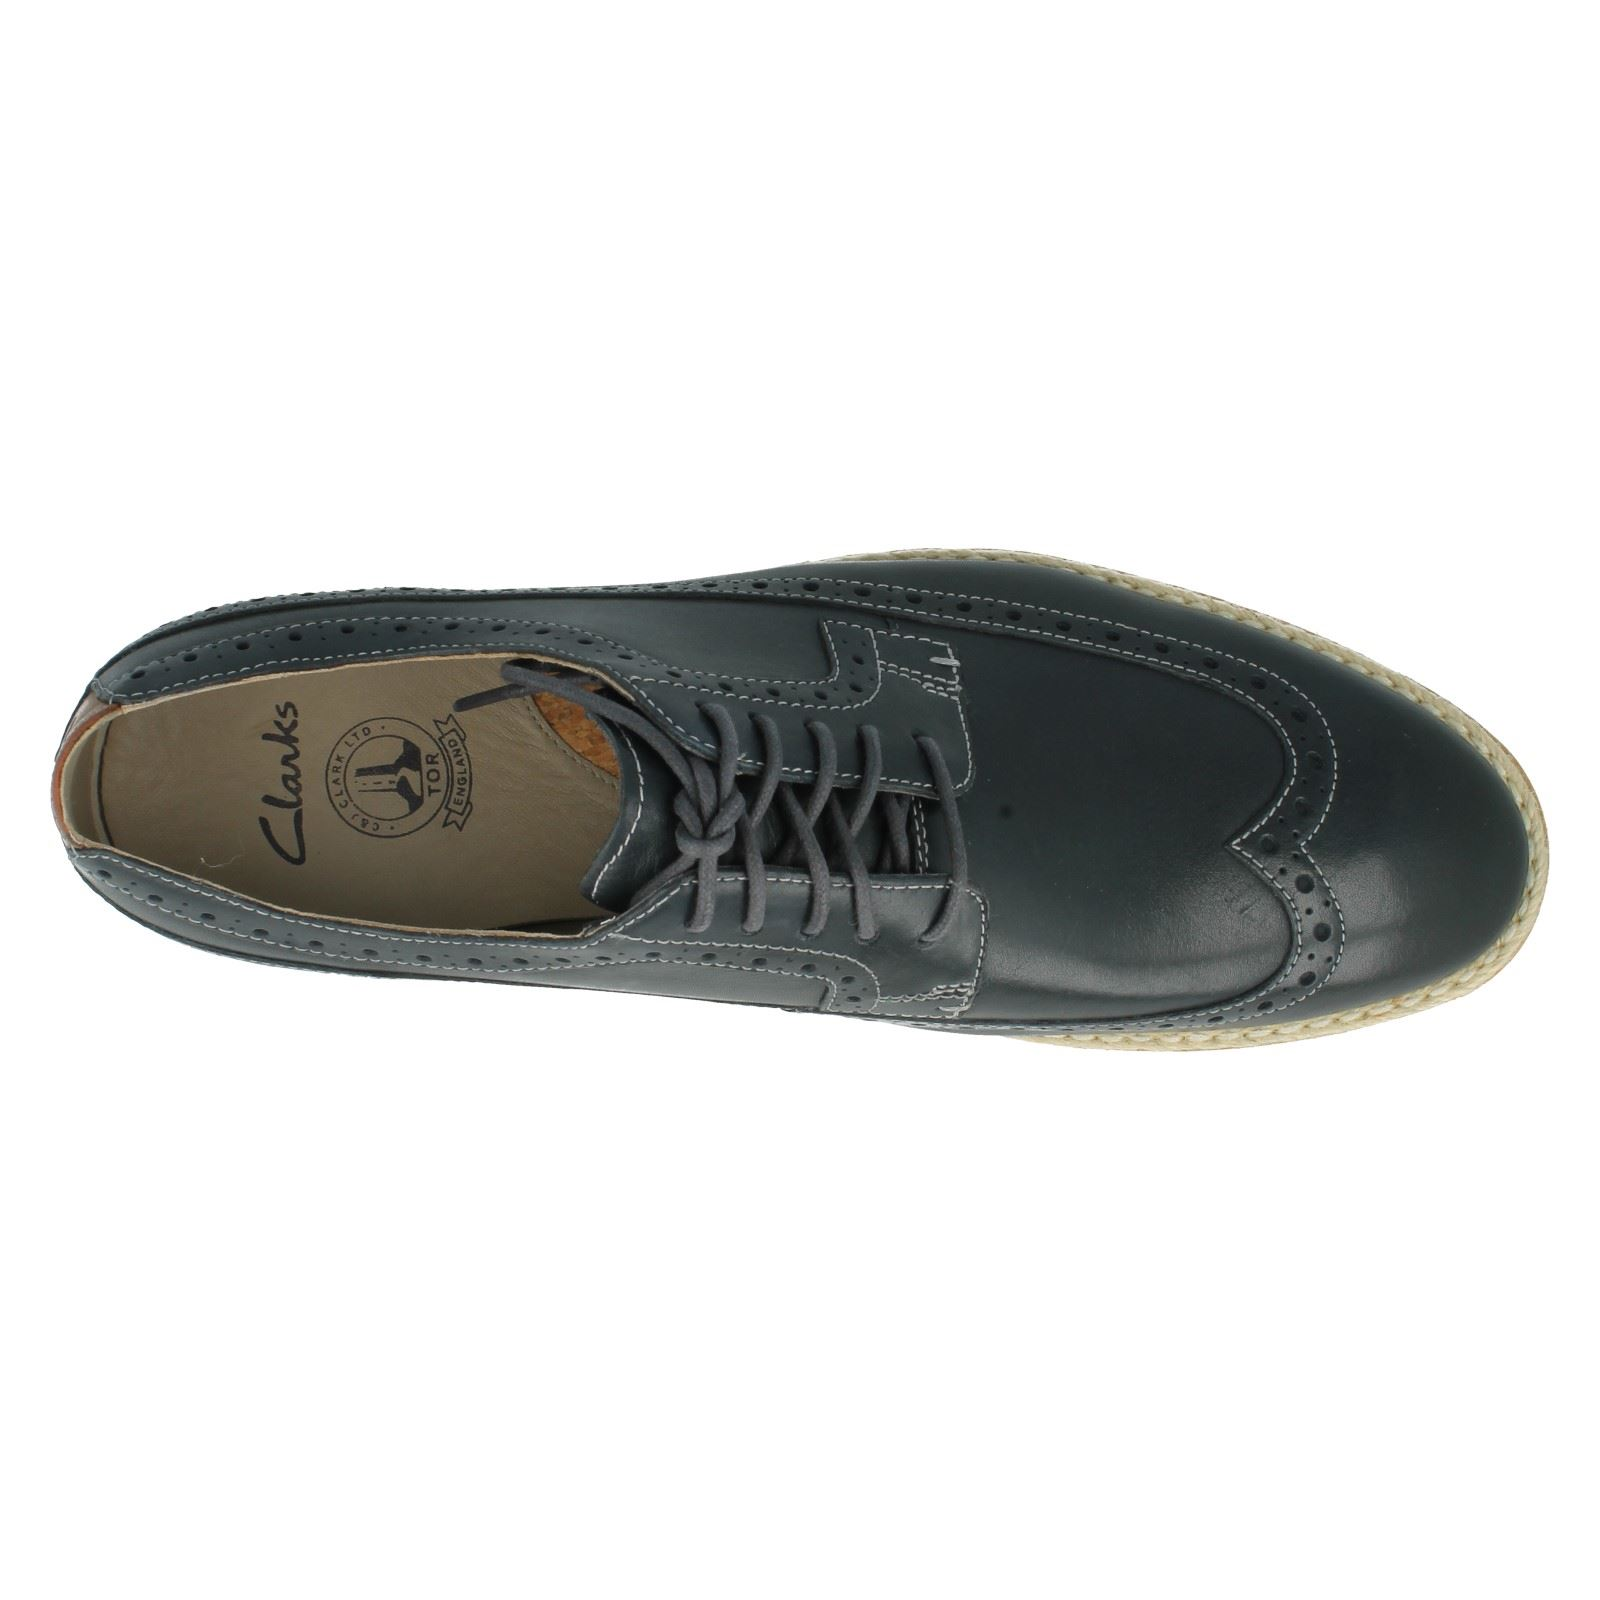 Men's Clarks Casual Lace Up Shoes The Style - Gambeson Limit